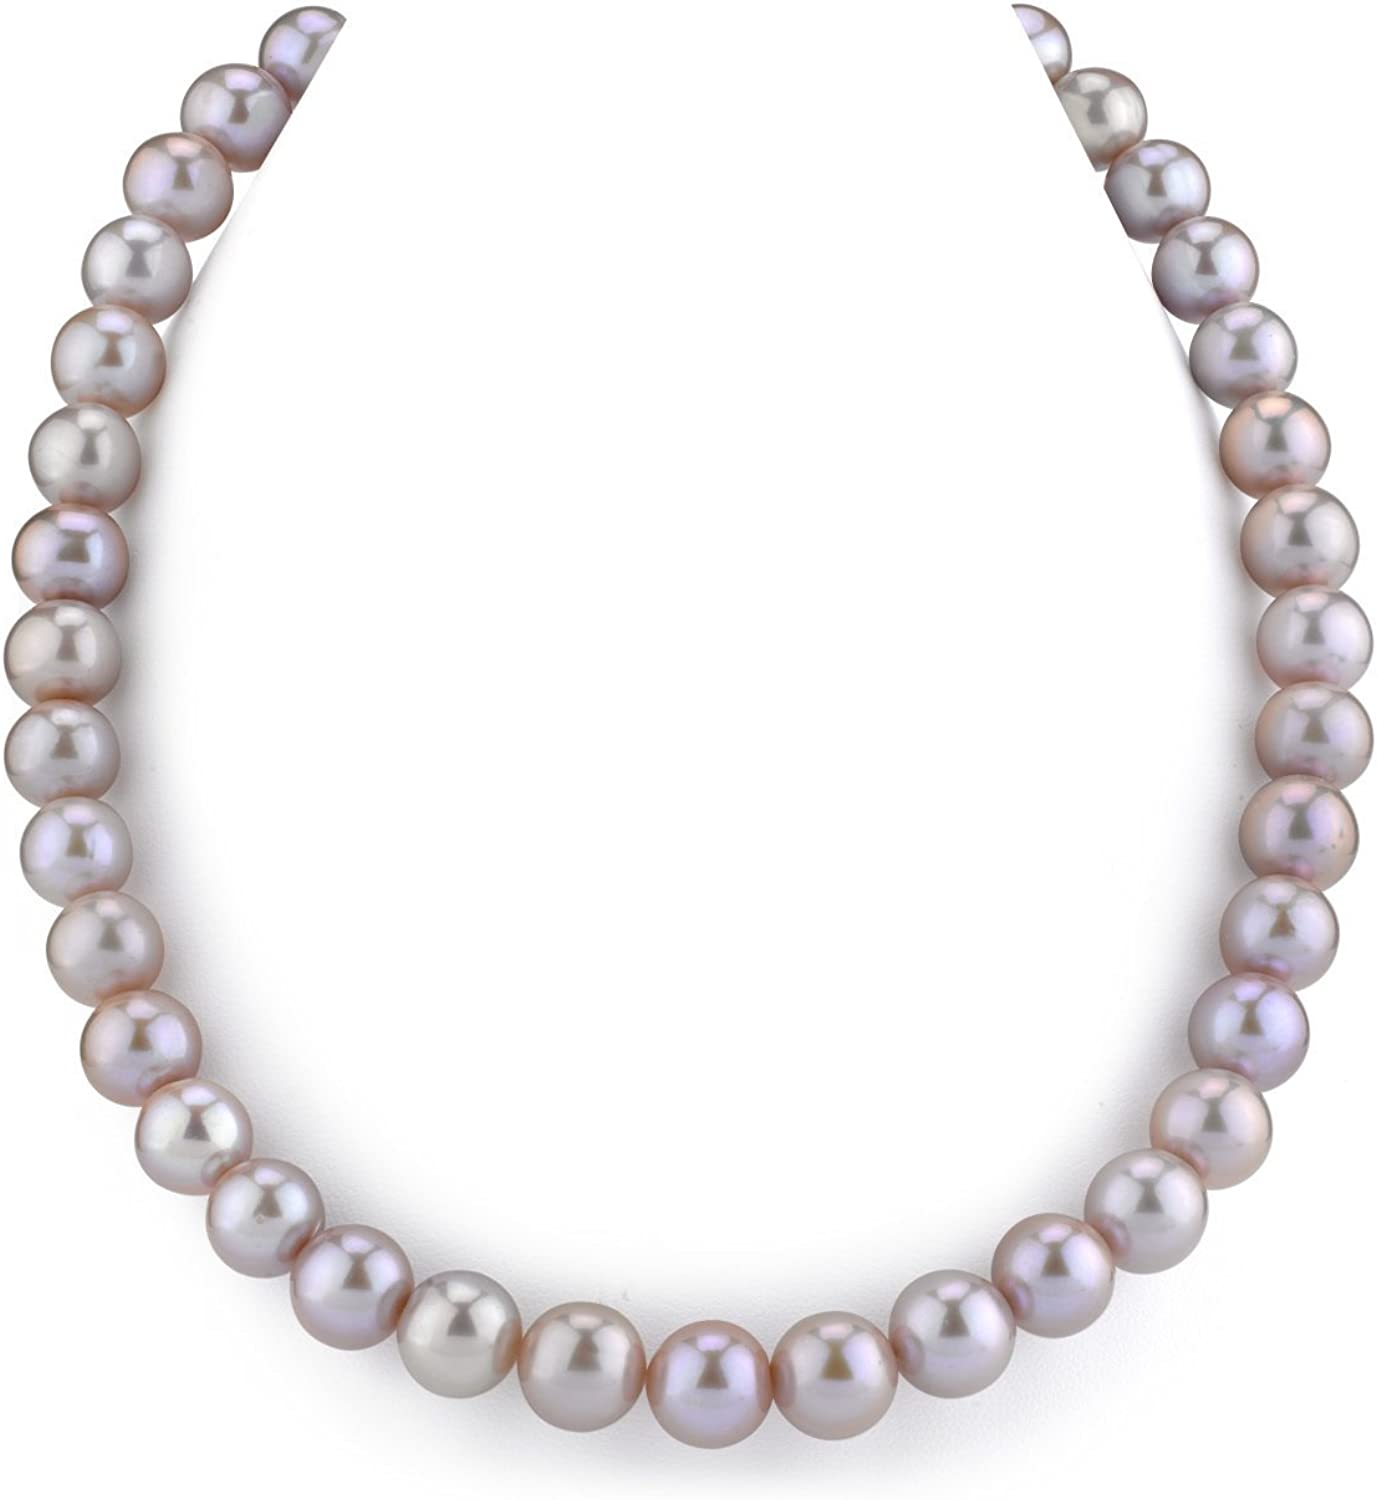 THE PEARL SOURCE 14K Gold AAA Quality White Freshwater Cultured Pearl Choker Necklace for Women in 16 Length